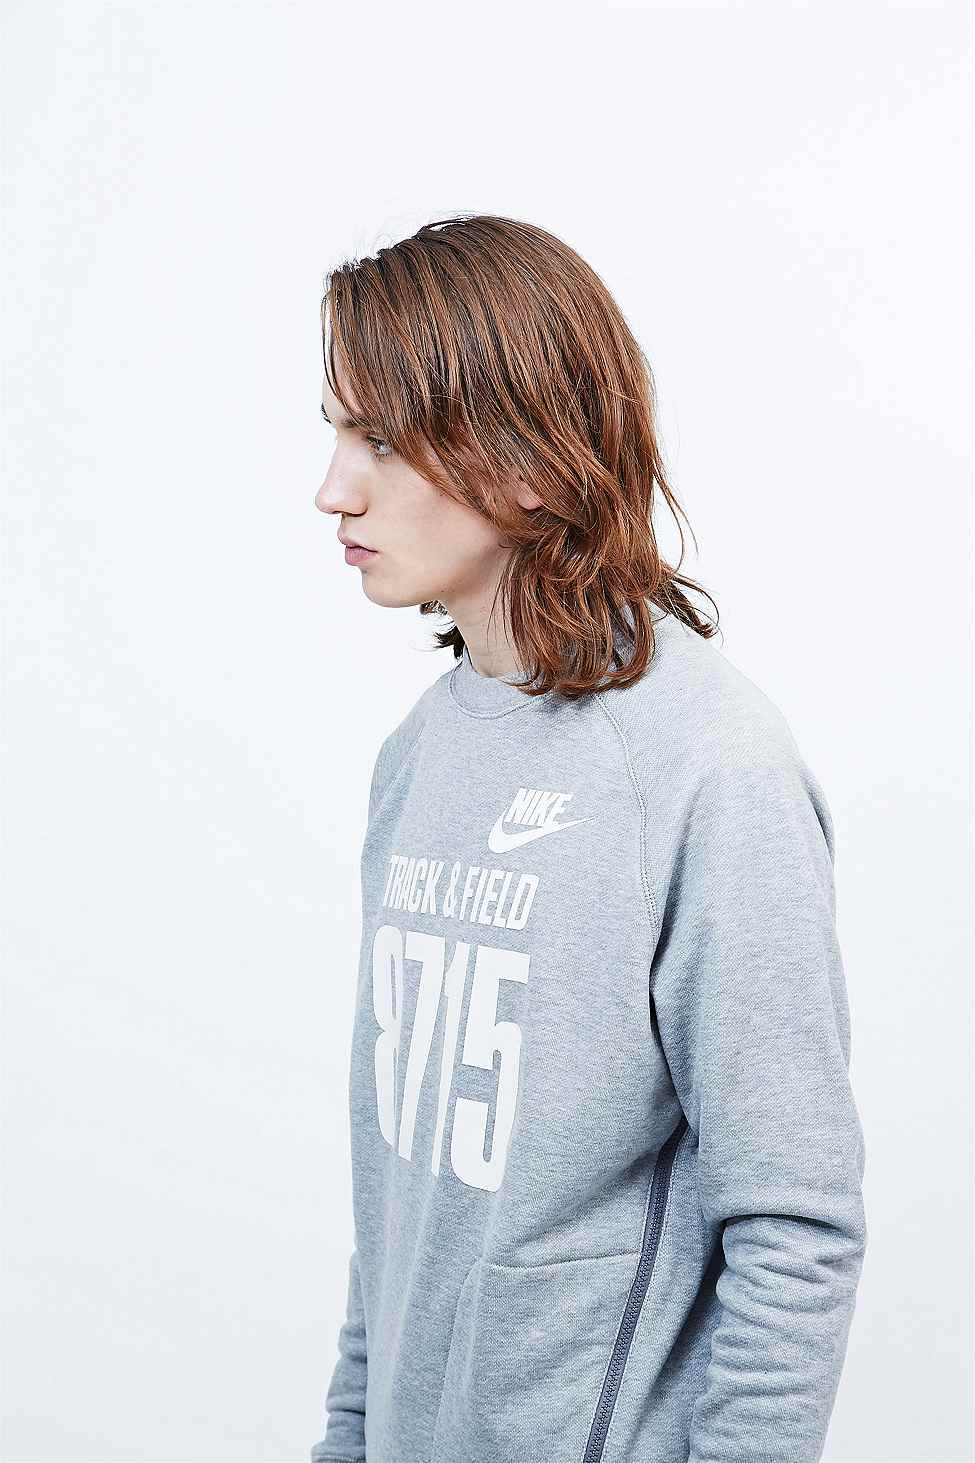 For Men Grey Lyst Sweatshirt Field In Track And Nike 8715 Gray qz6ZY8